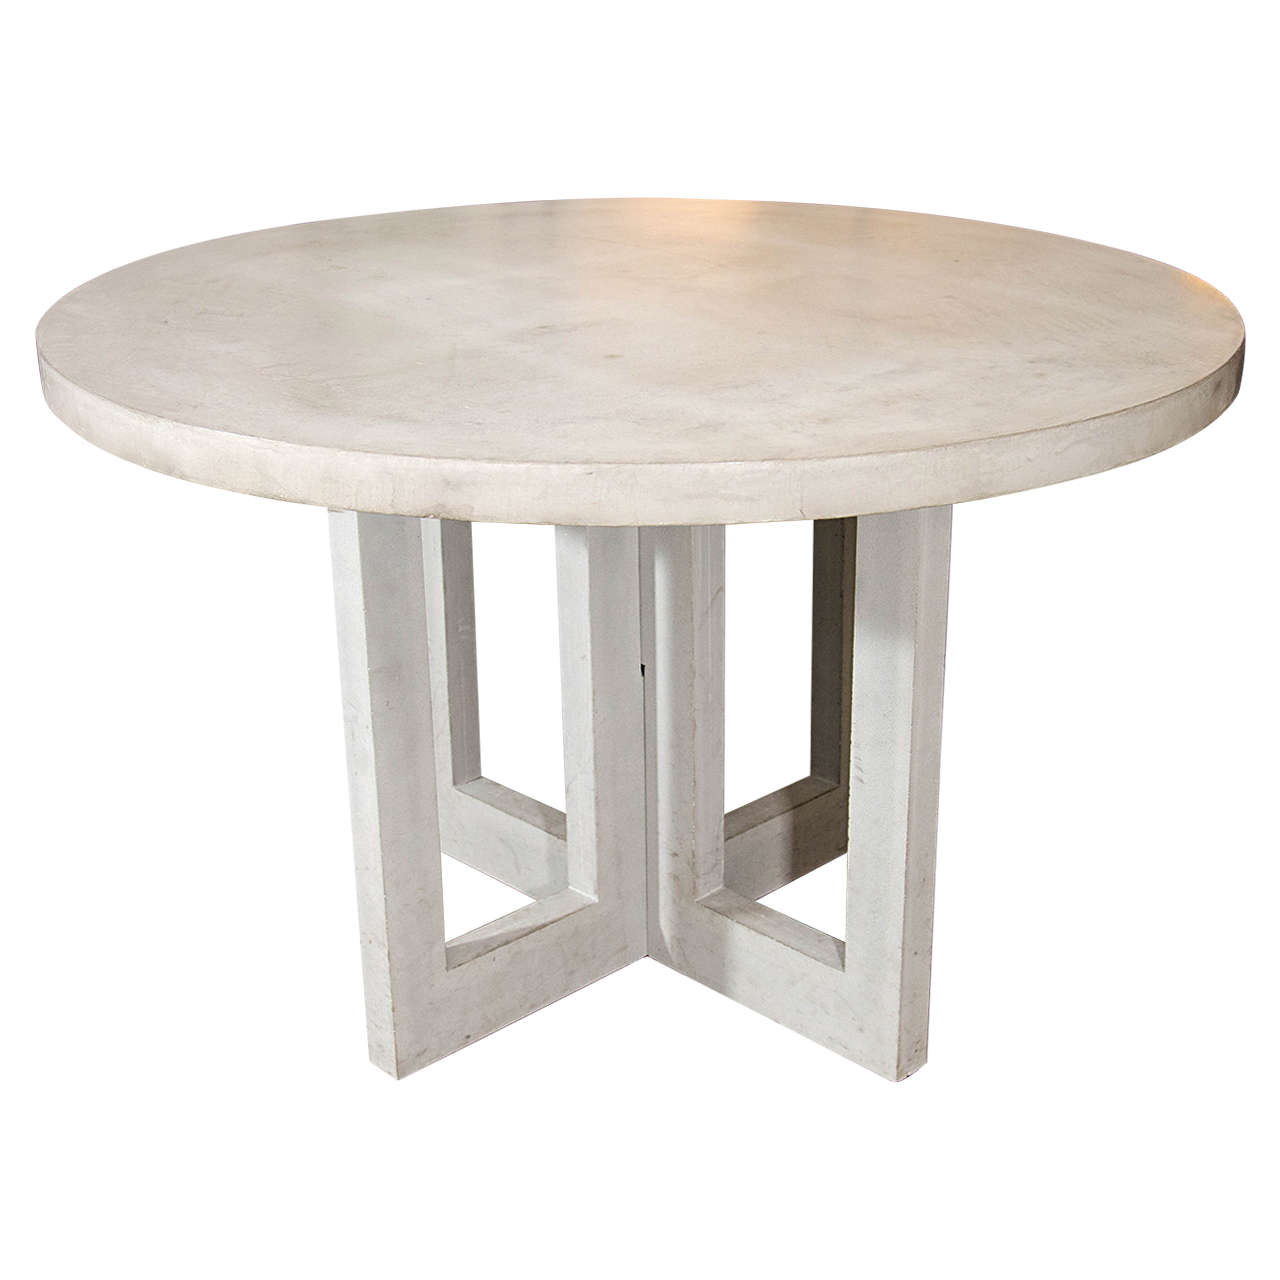 dalton concrete dining table at 1stdibs. Black Bedroom Furniture Sets. Home Design Ideas